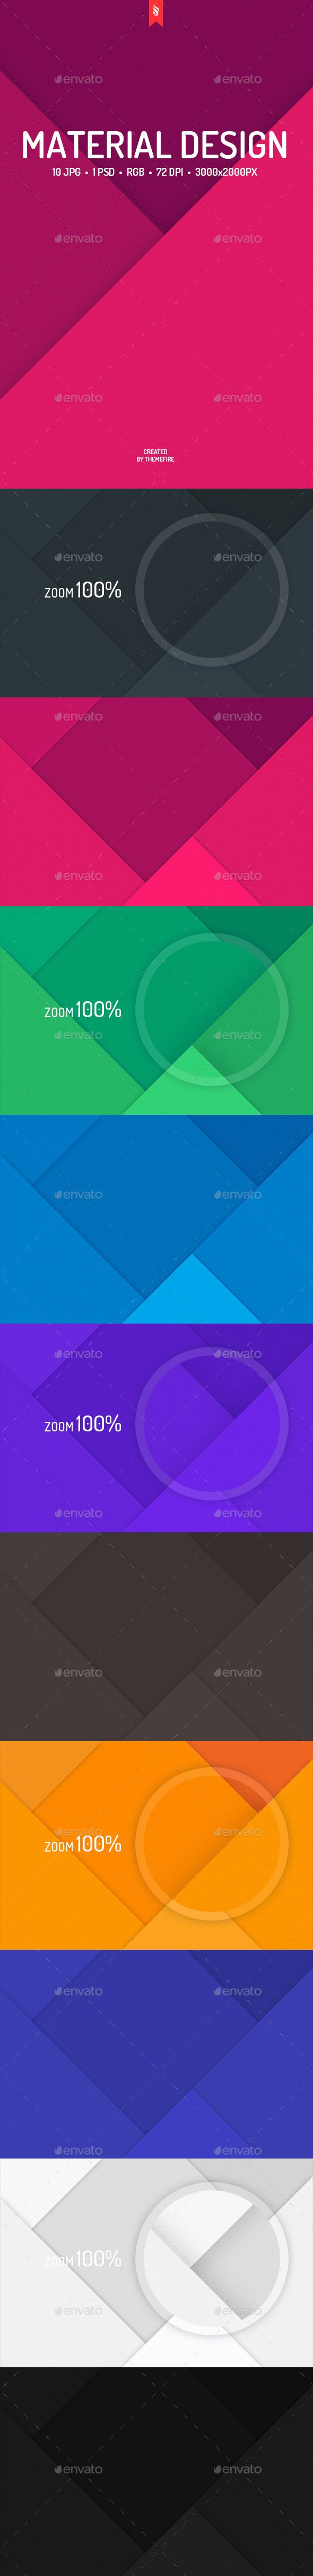 10 Material Design Backgrounds. Download here: http://graphicriver.net/item/10-material-design-backgrounds/14204717?ref=ksioks